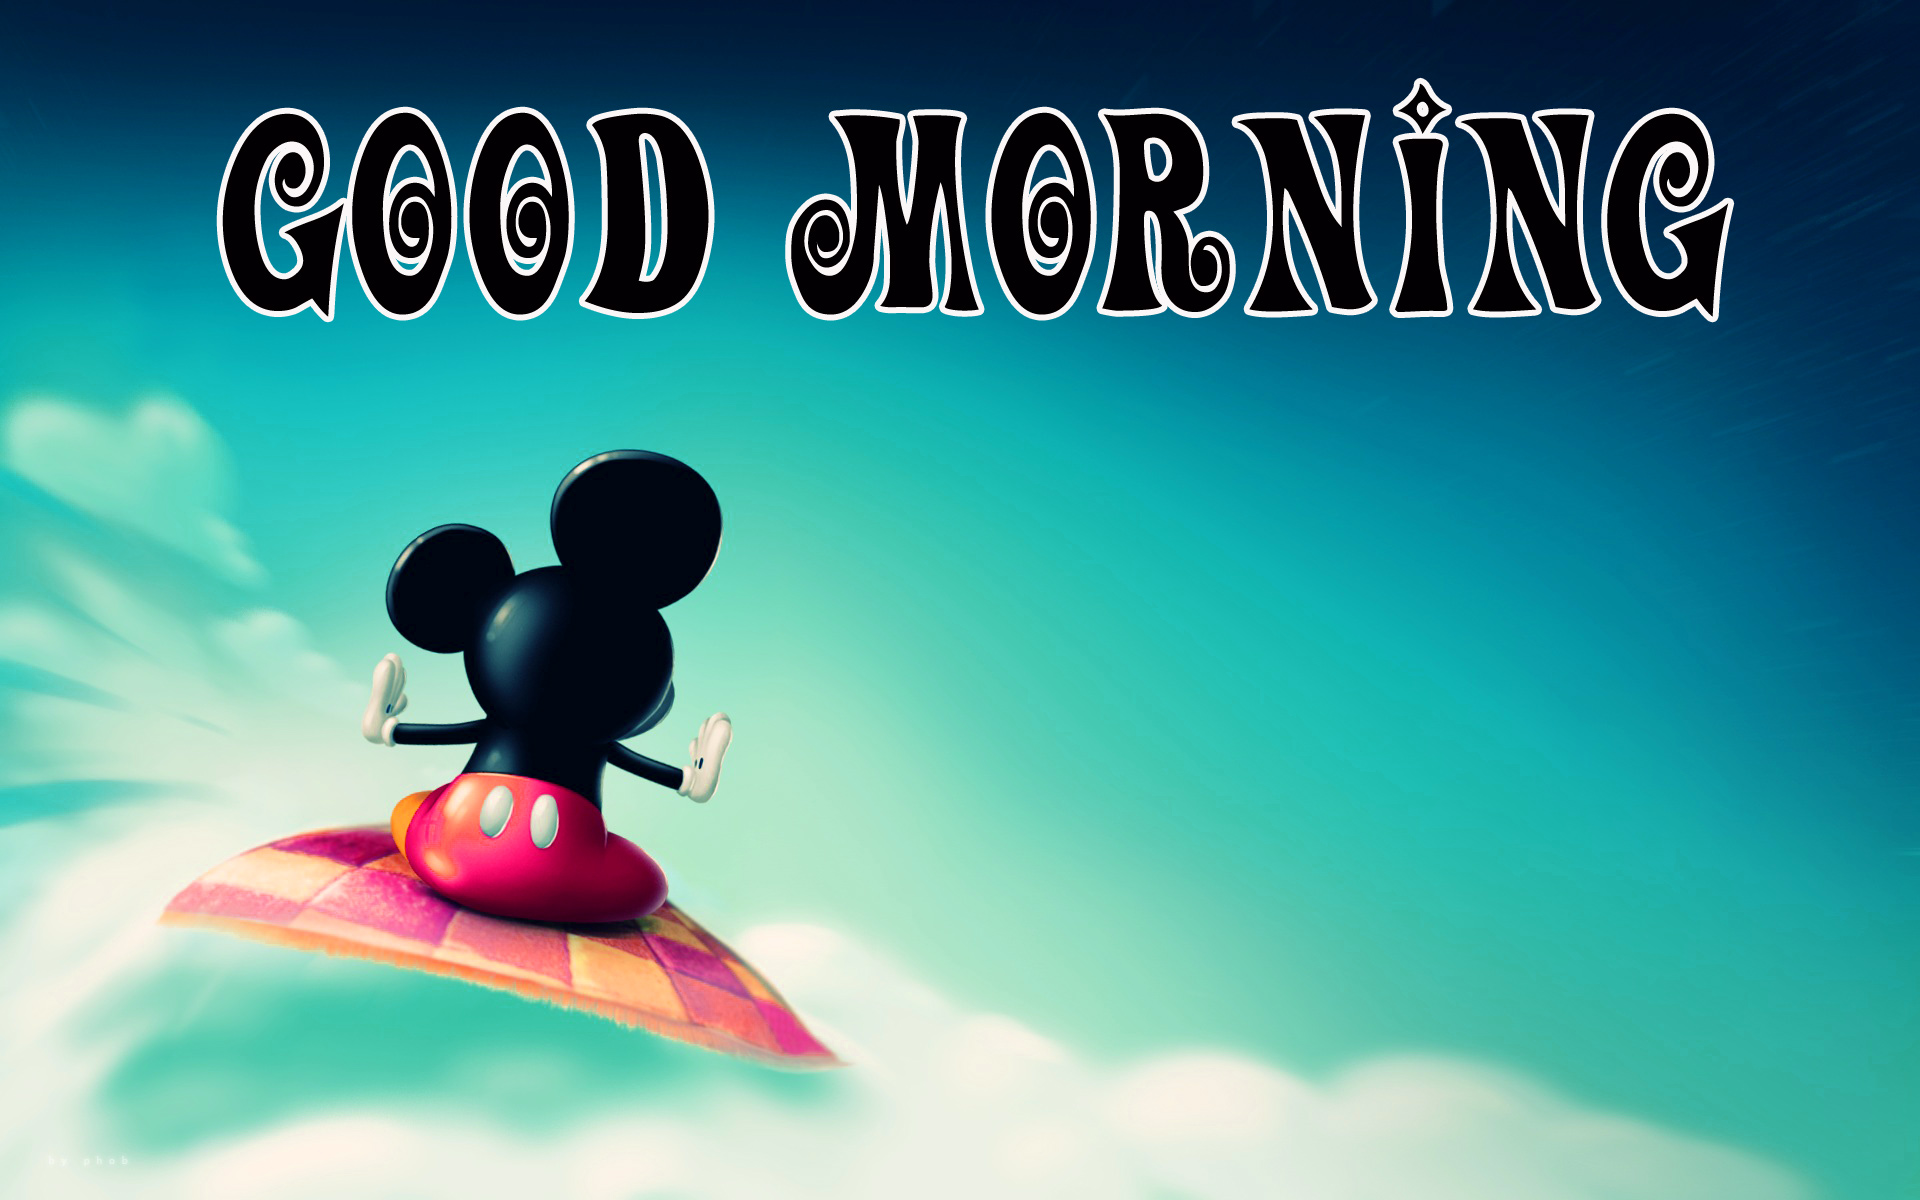 Good morning  wishes with mickey Images Photo For Facebook